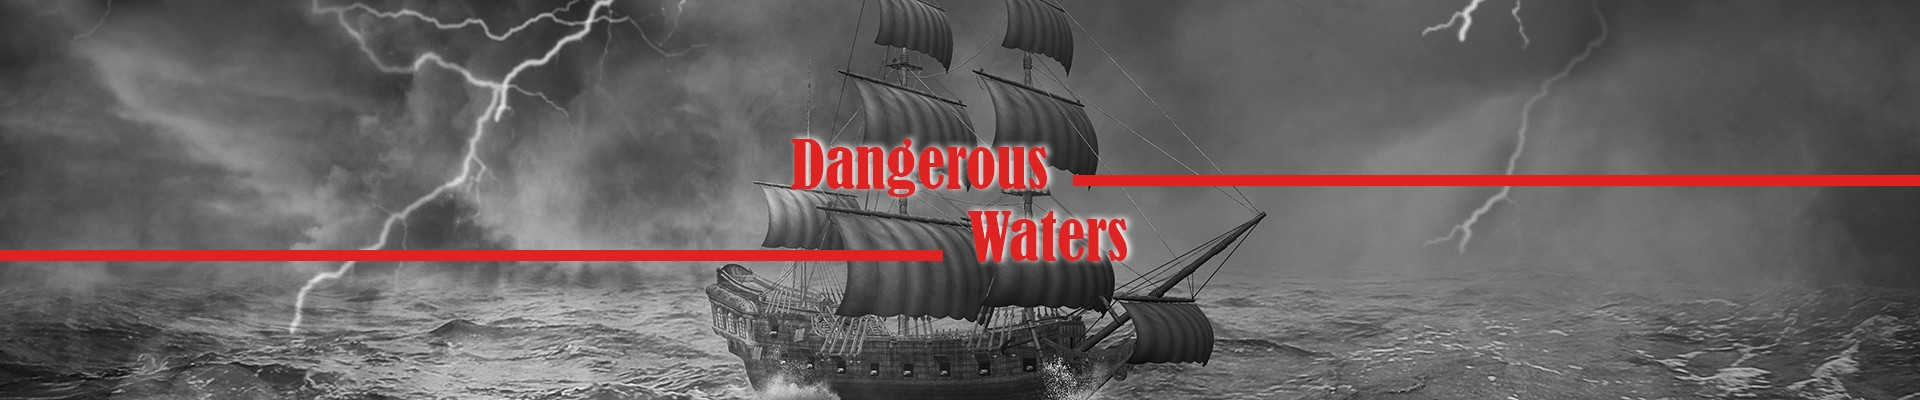 dangerous-waters-old-ship-during-storm-at-sea